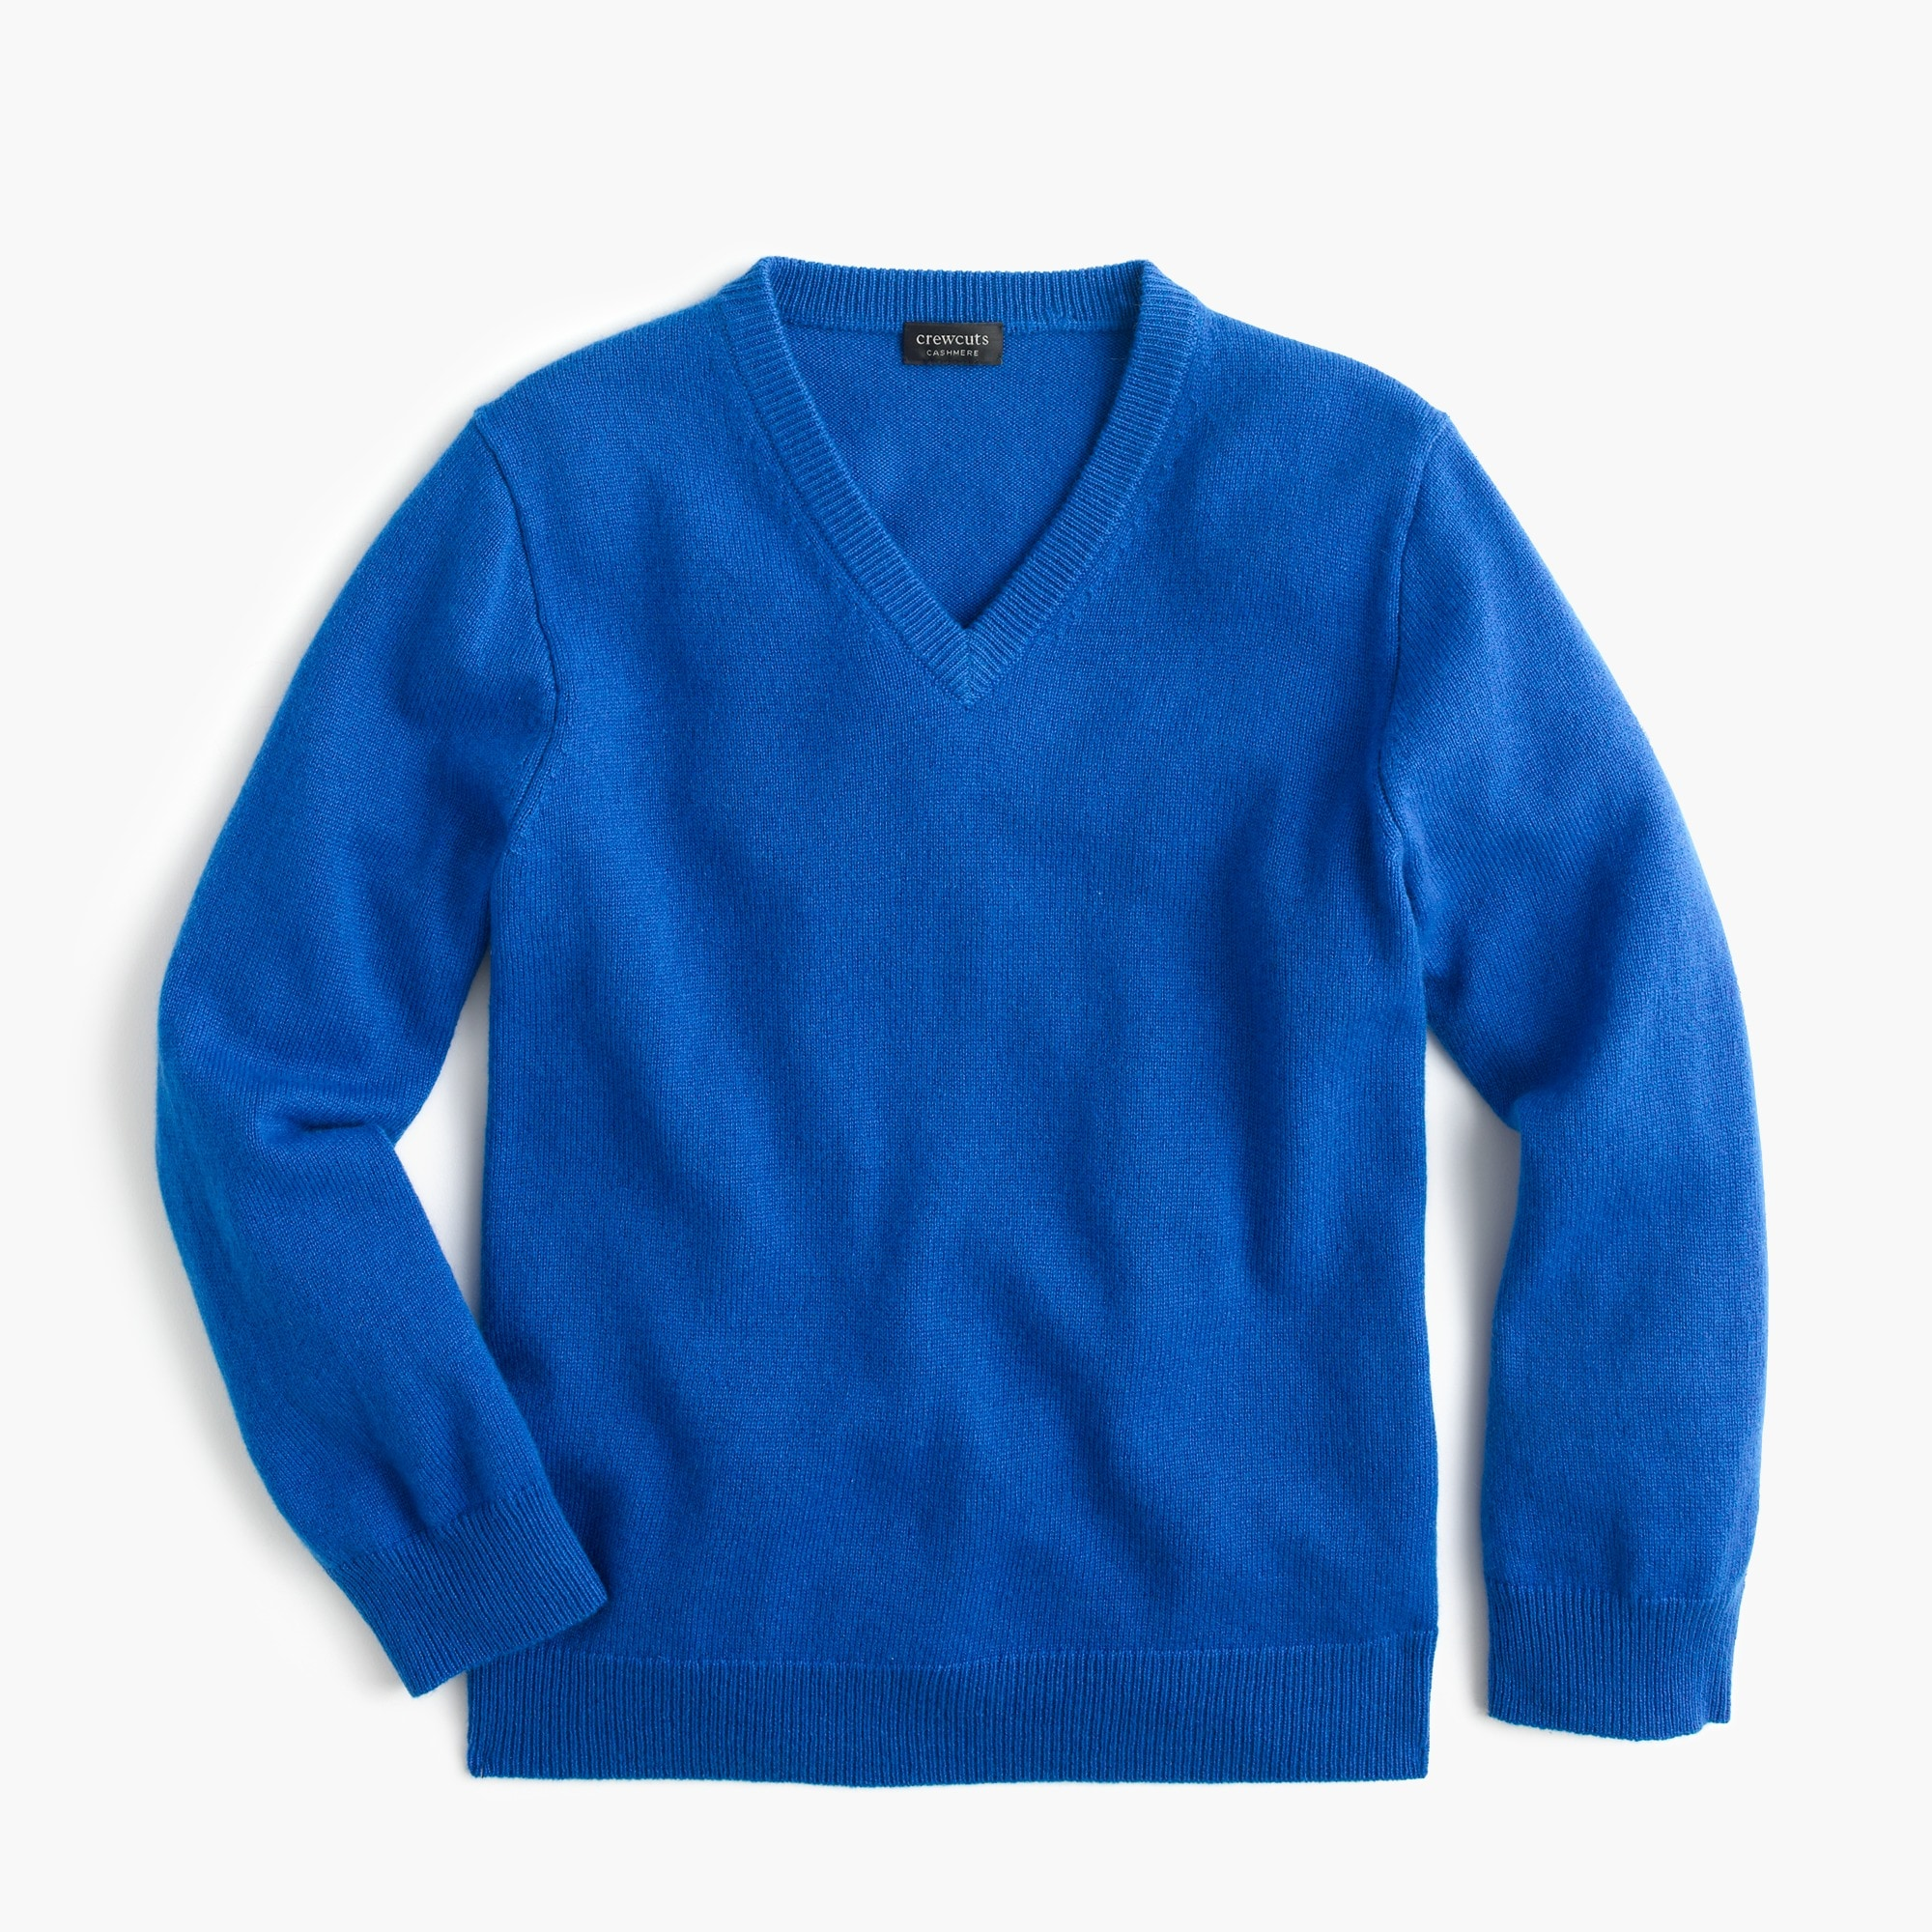 Image 1 for Kids' cashmere V-neck sweater